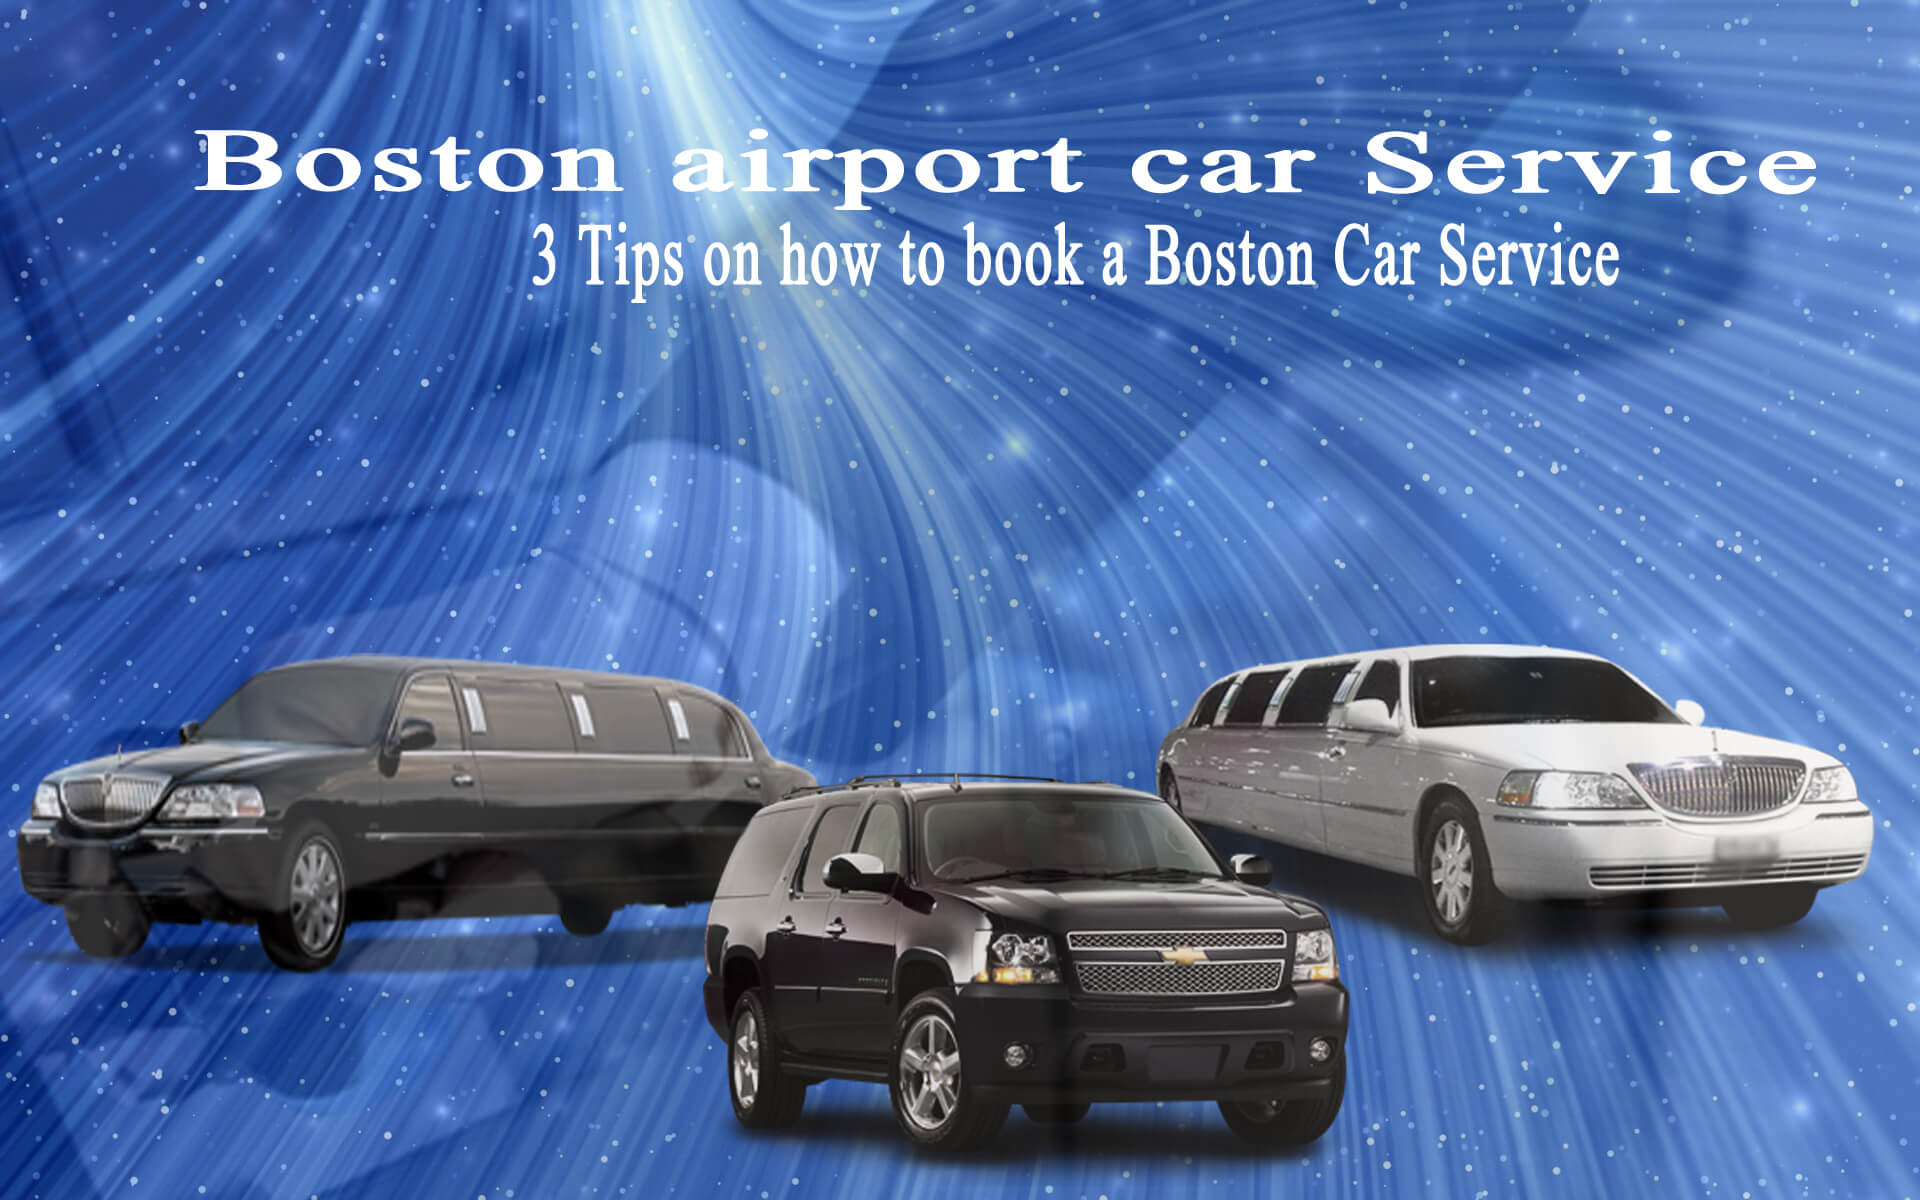 3 Tips For Booking A Boston Car Service. Hospitality Signs. Hypoglycemic Coma Signs. Ring Signs Of Stroke. Under Jaw Signs. Pointless Signs Of Stroke. 2018 Signs. Porcelain Signs. Hazardous Chemical Signs Of Stroke